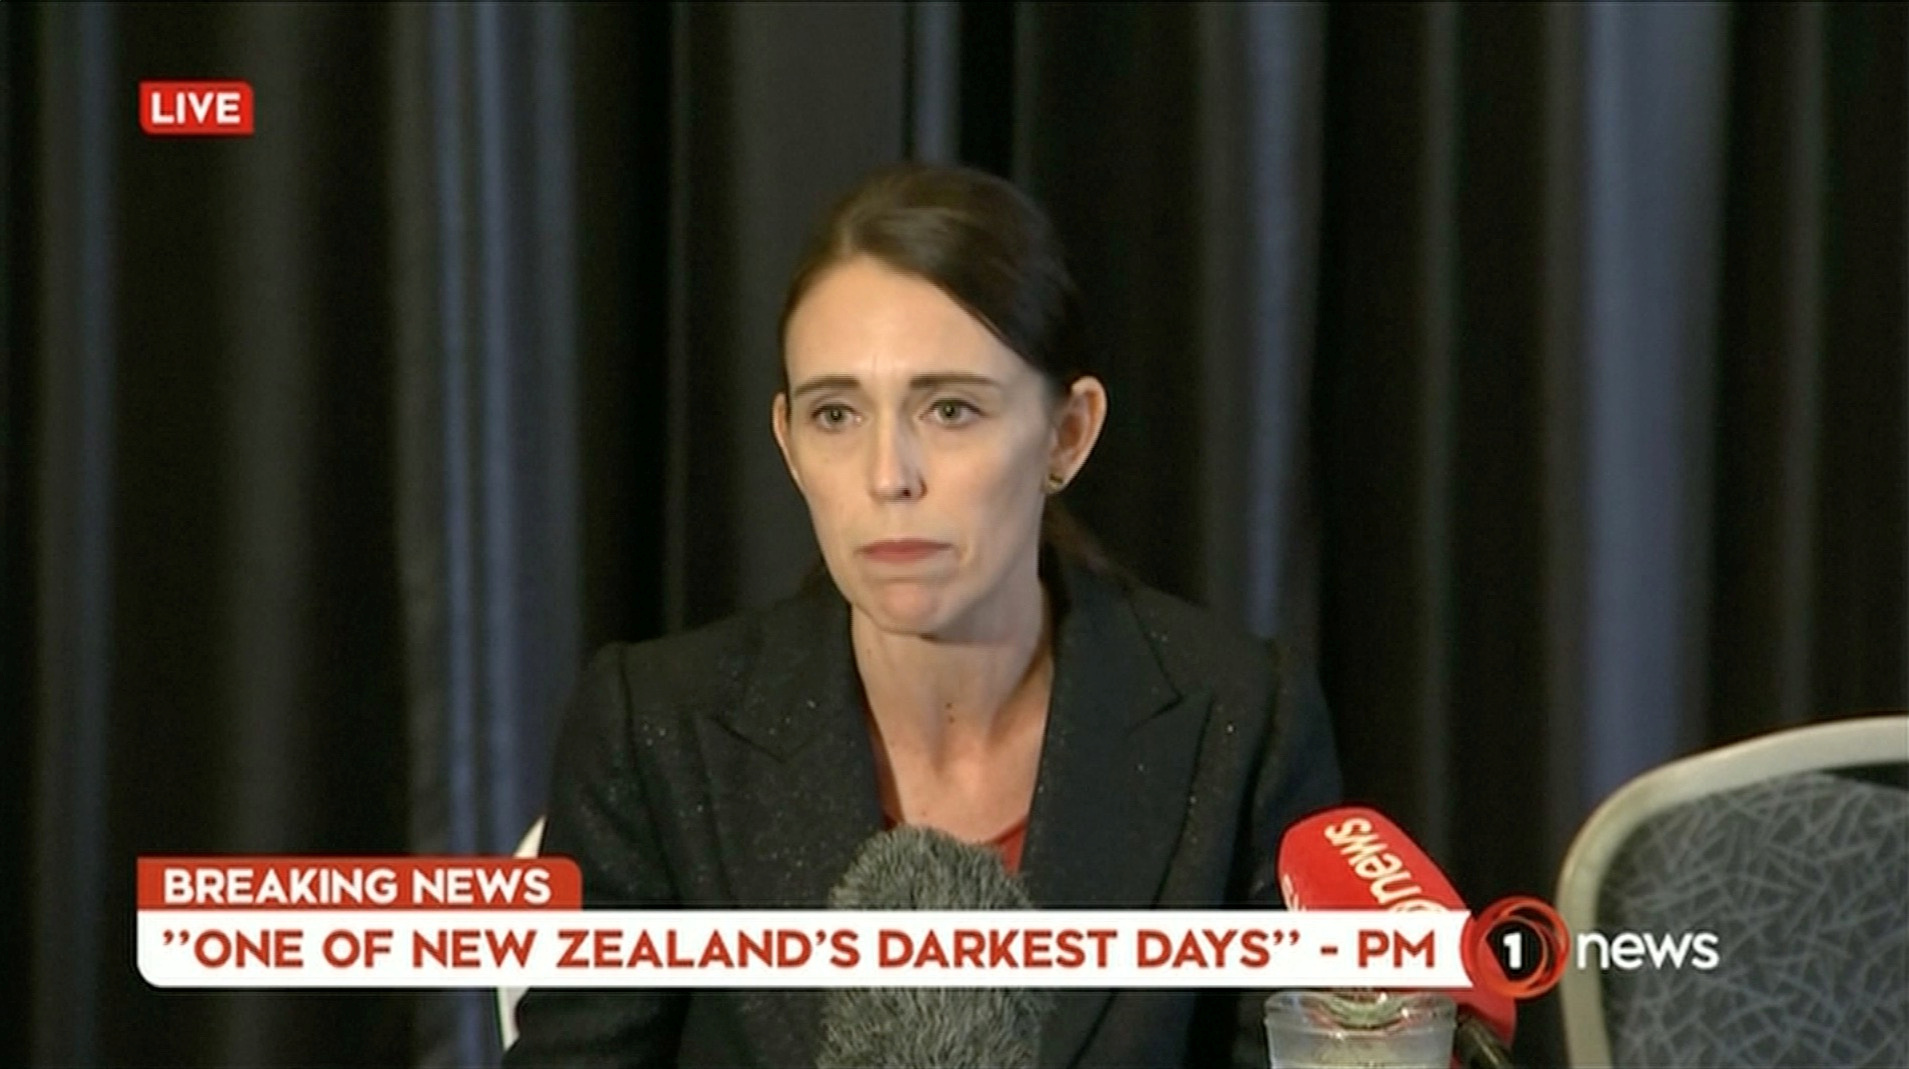 New Zealand's Prime Minister Jacinda Ardern speaks on live television following fatal shootings at two mosques in central Christchurch, New Zealand, March 15, 2019.